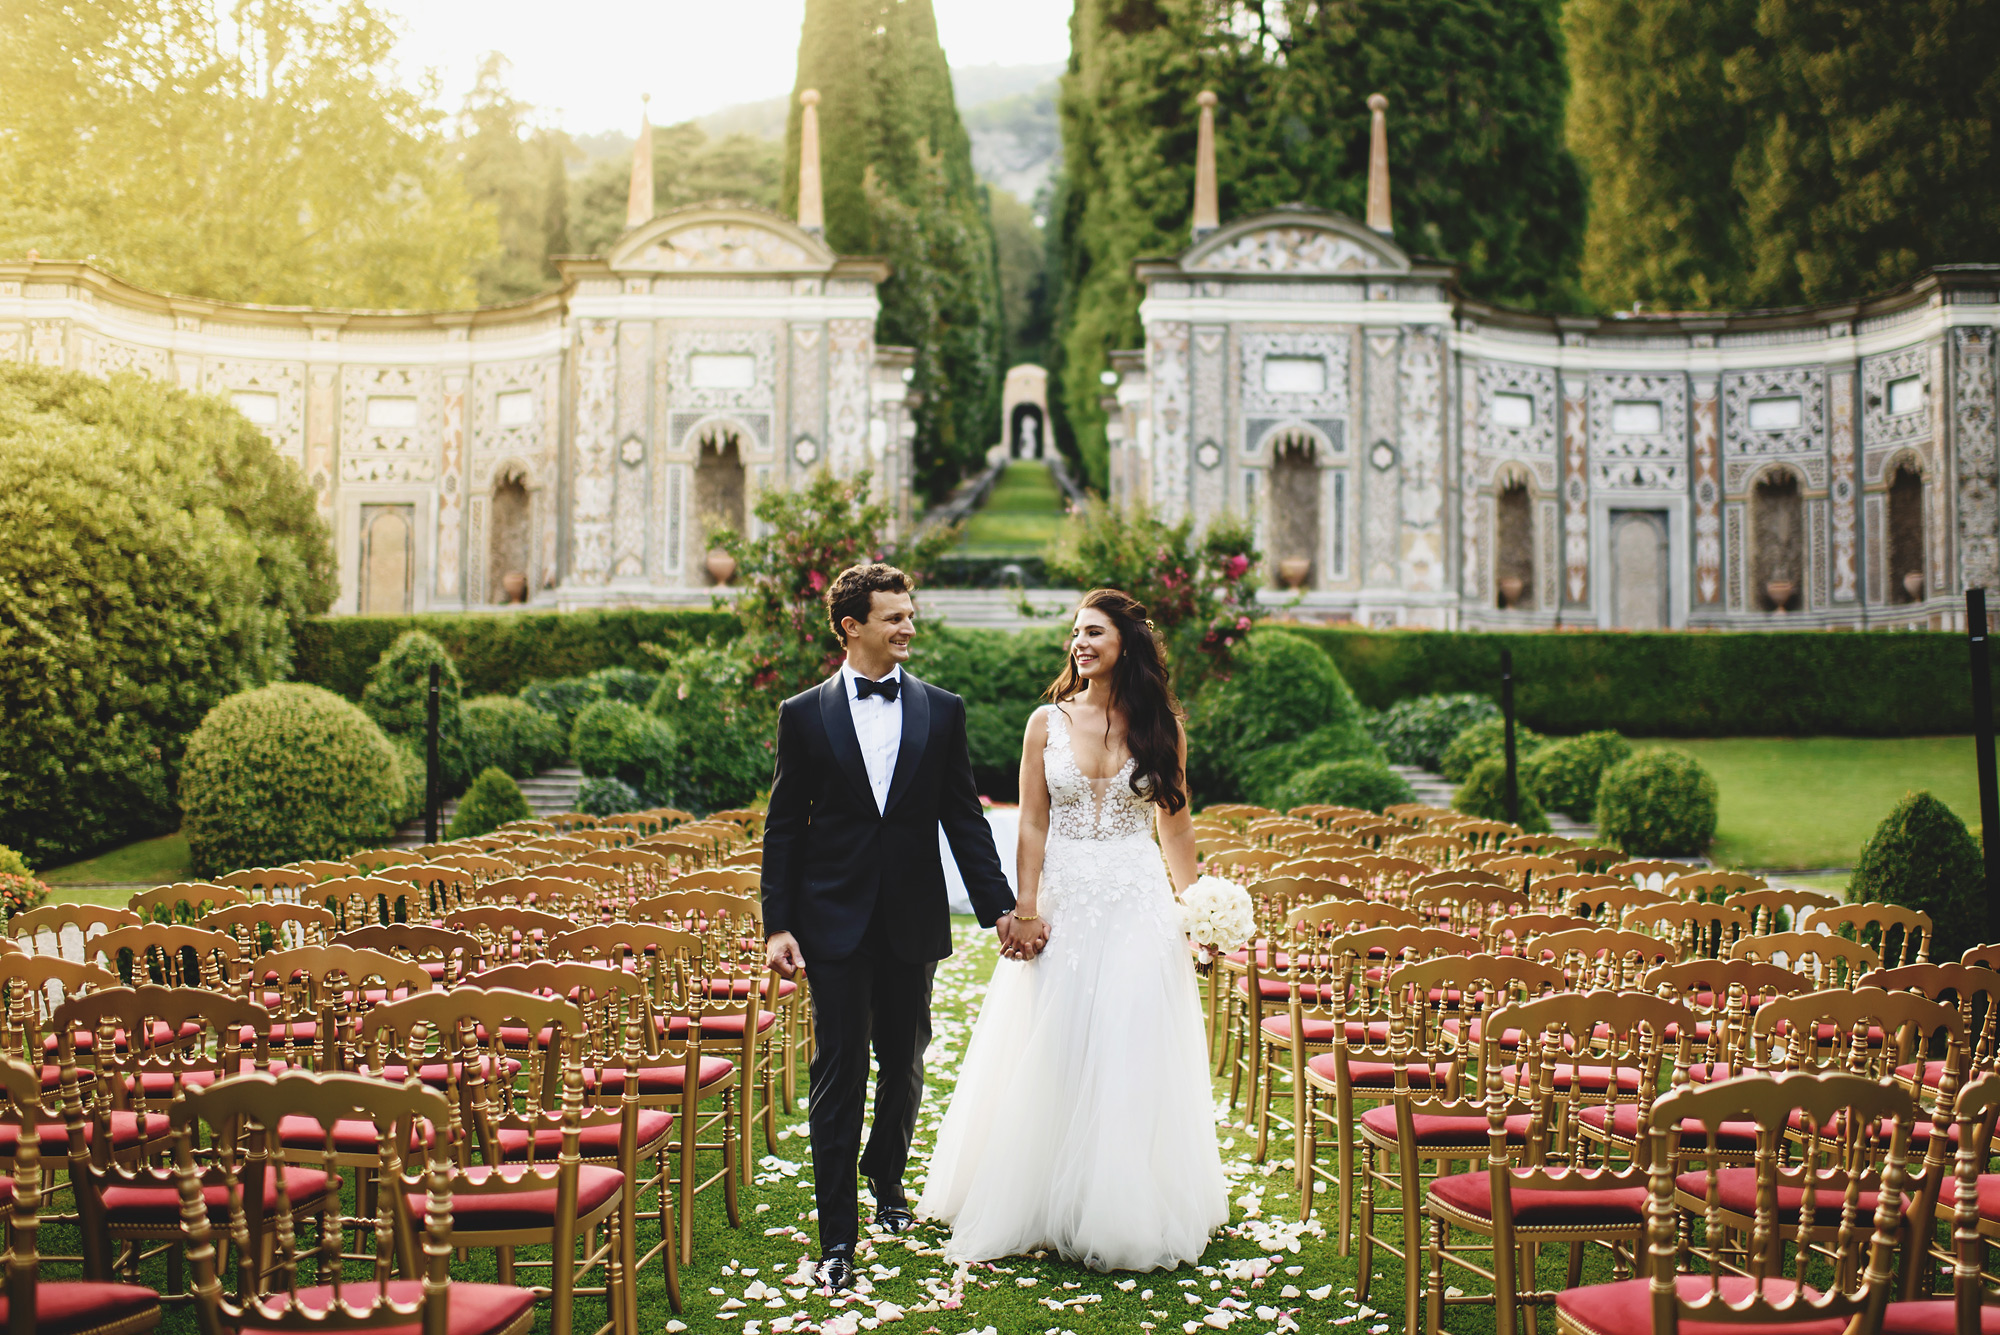 Couple walking isle at luxury Villa d'Este - photo by Ross Harvey